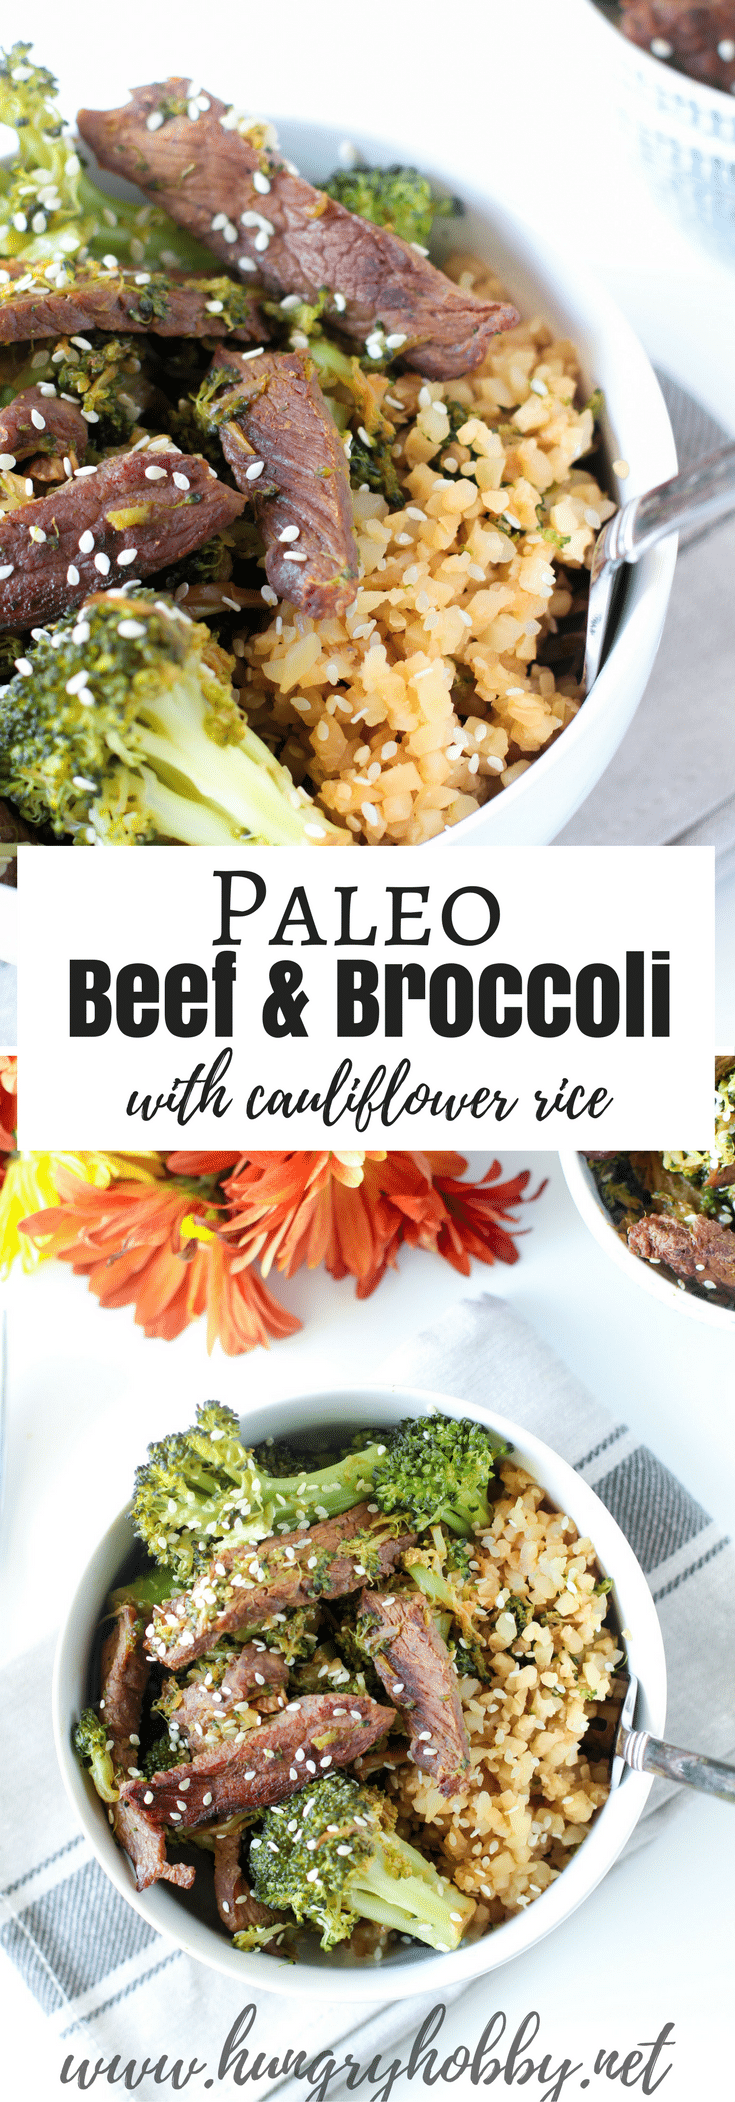 A gluten free, soy free, and paleo friendly Beef & Broccoli recipe that requires only one pan!  This one is so easy you'll want to make it every week!